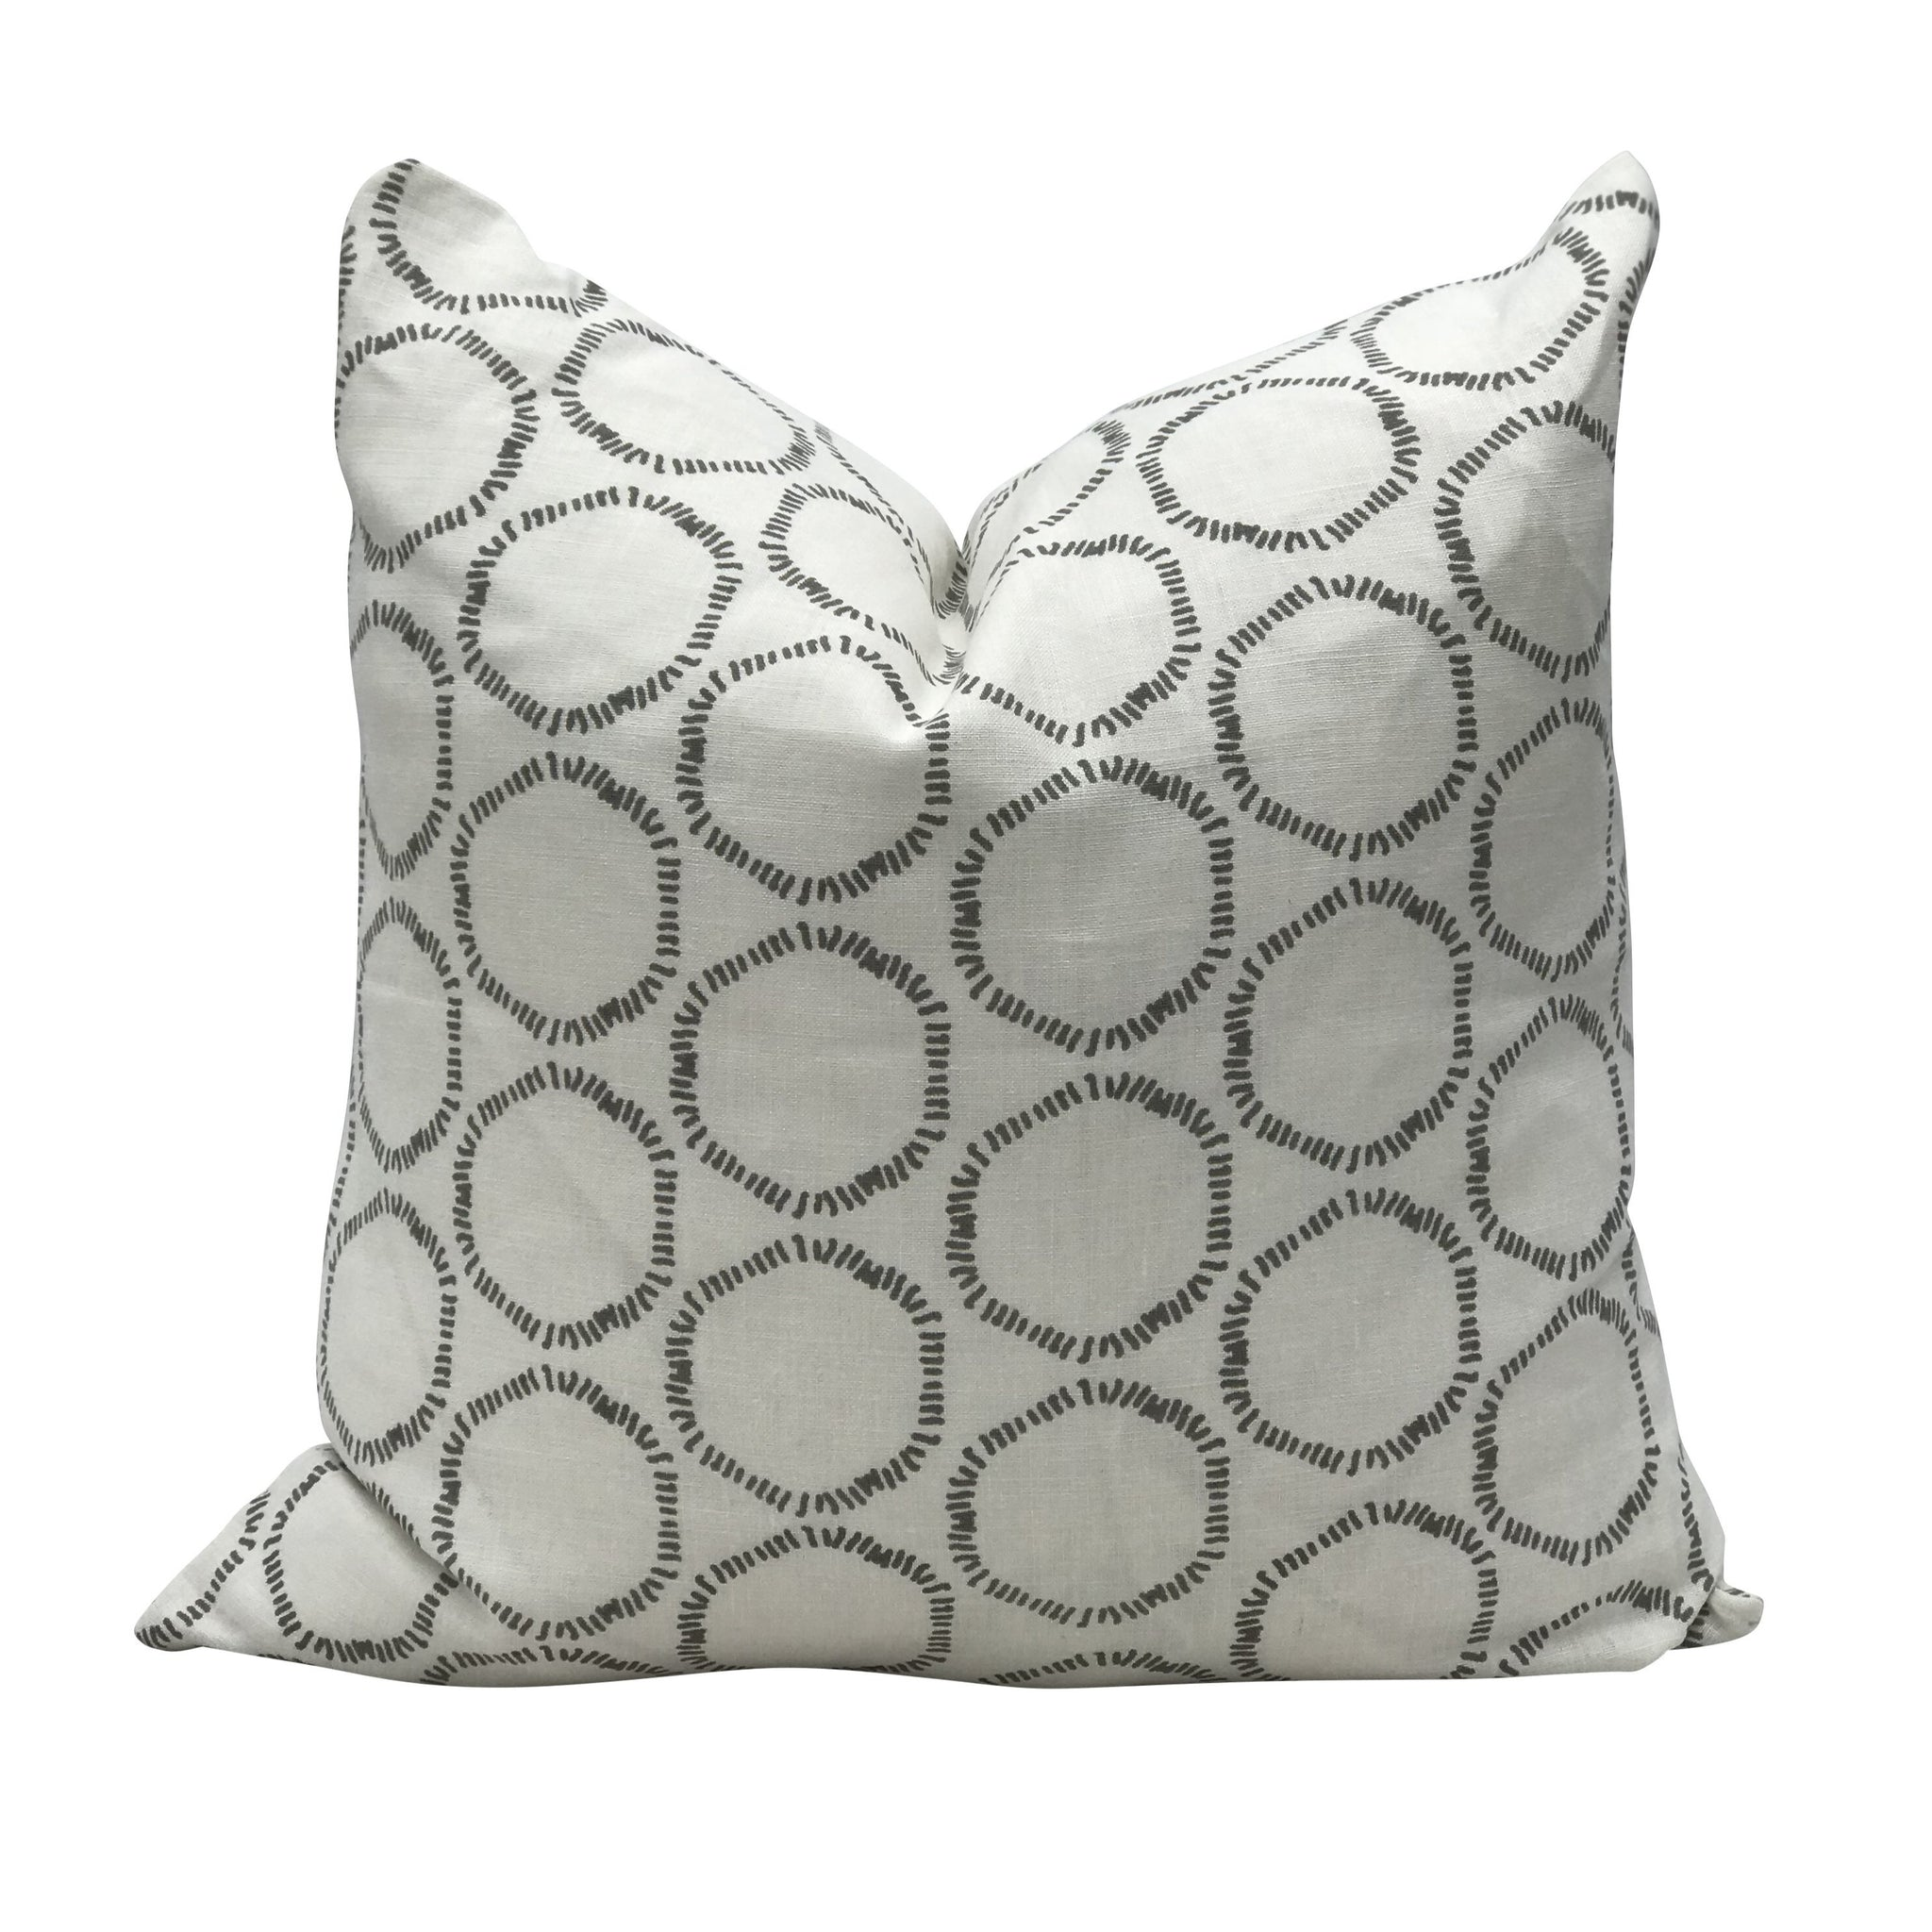 Astonishing Cape Pillow In Dove On Oyster Gmtry Best Dining Table And Chair Ideas Images Gmtryco